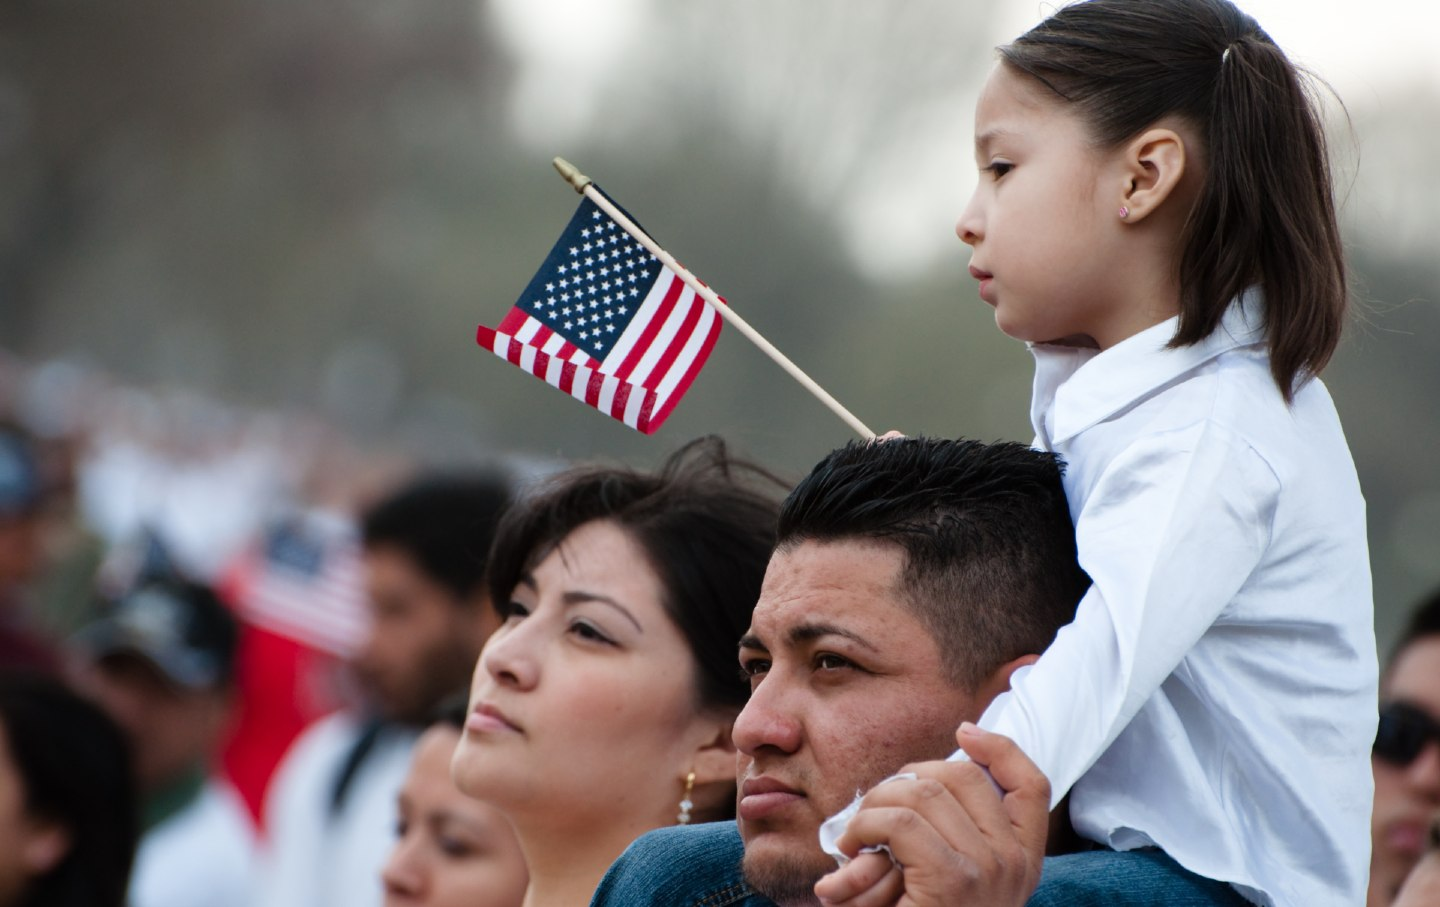 immigration-protest-shutterstock-img